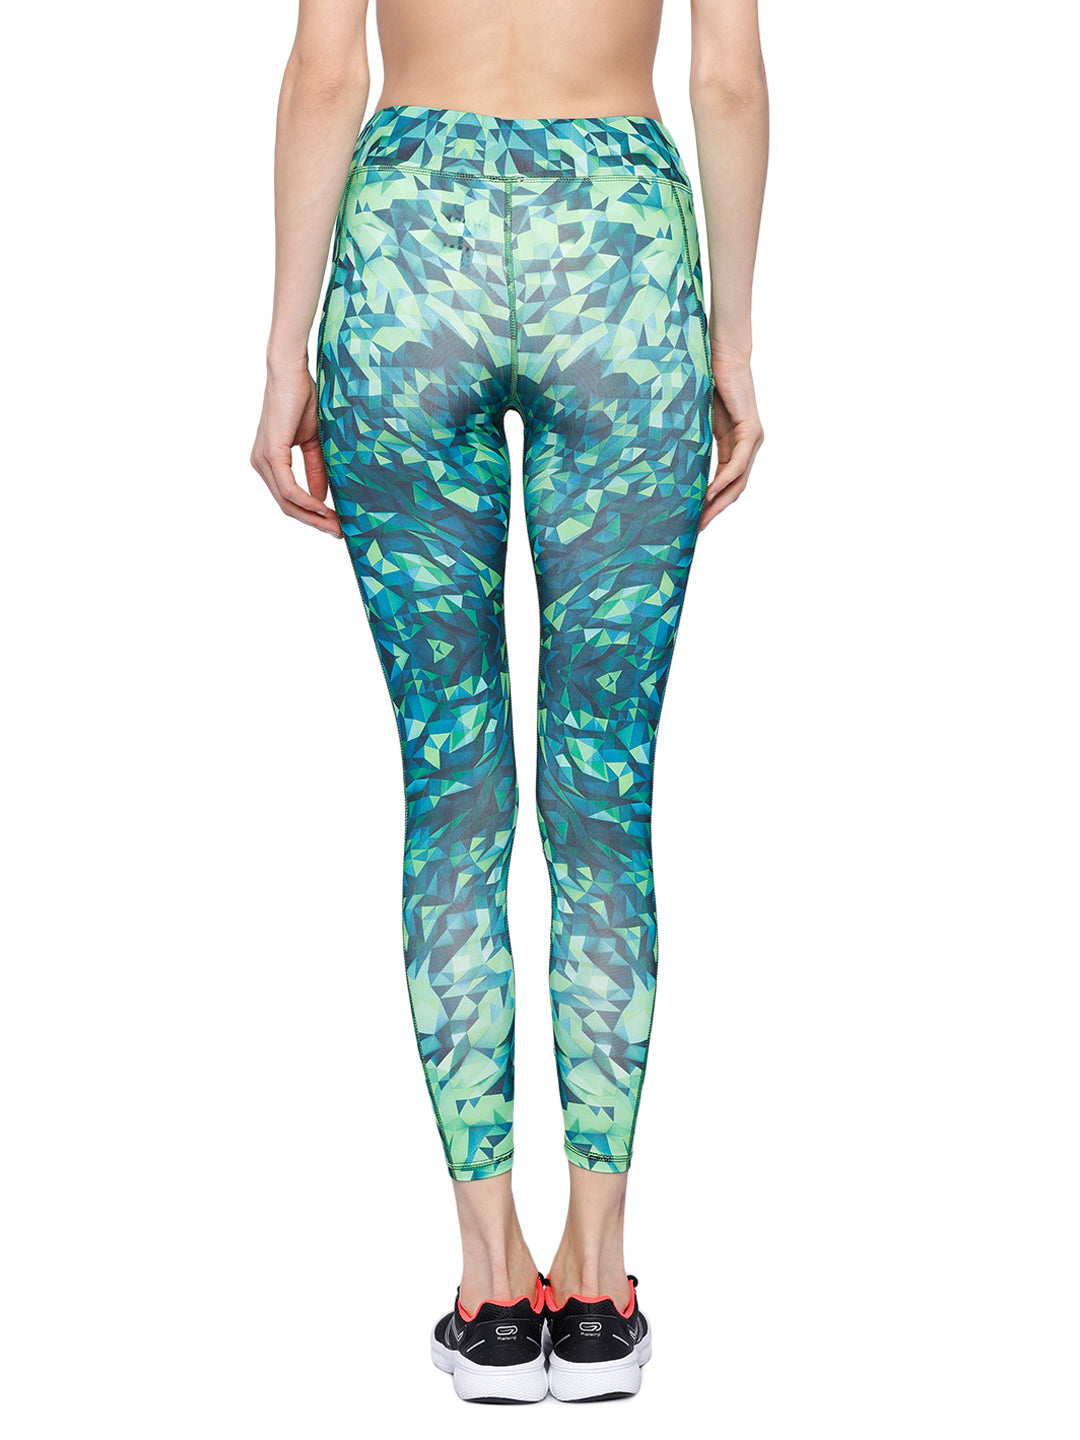 Piranha Women's Printed Yoga And Running Pants - YP84